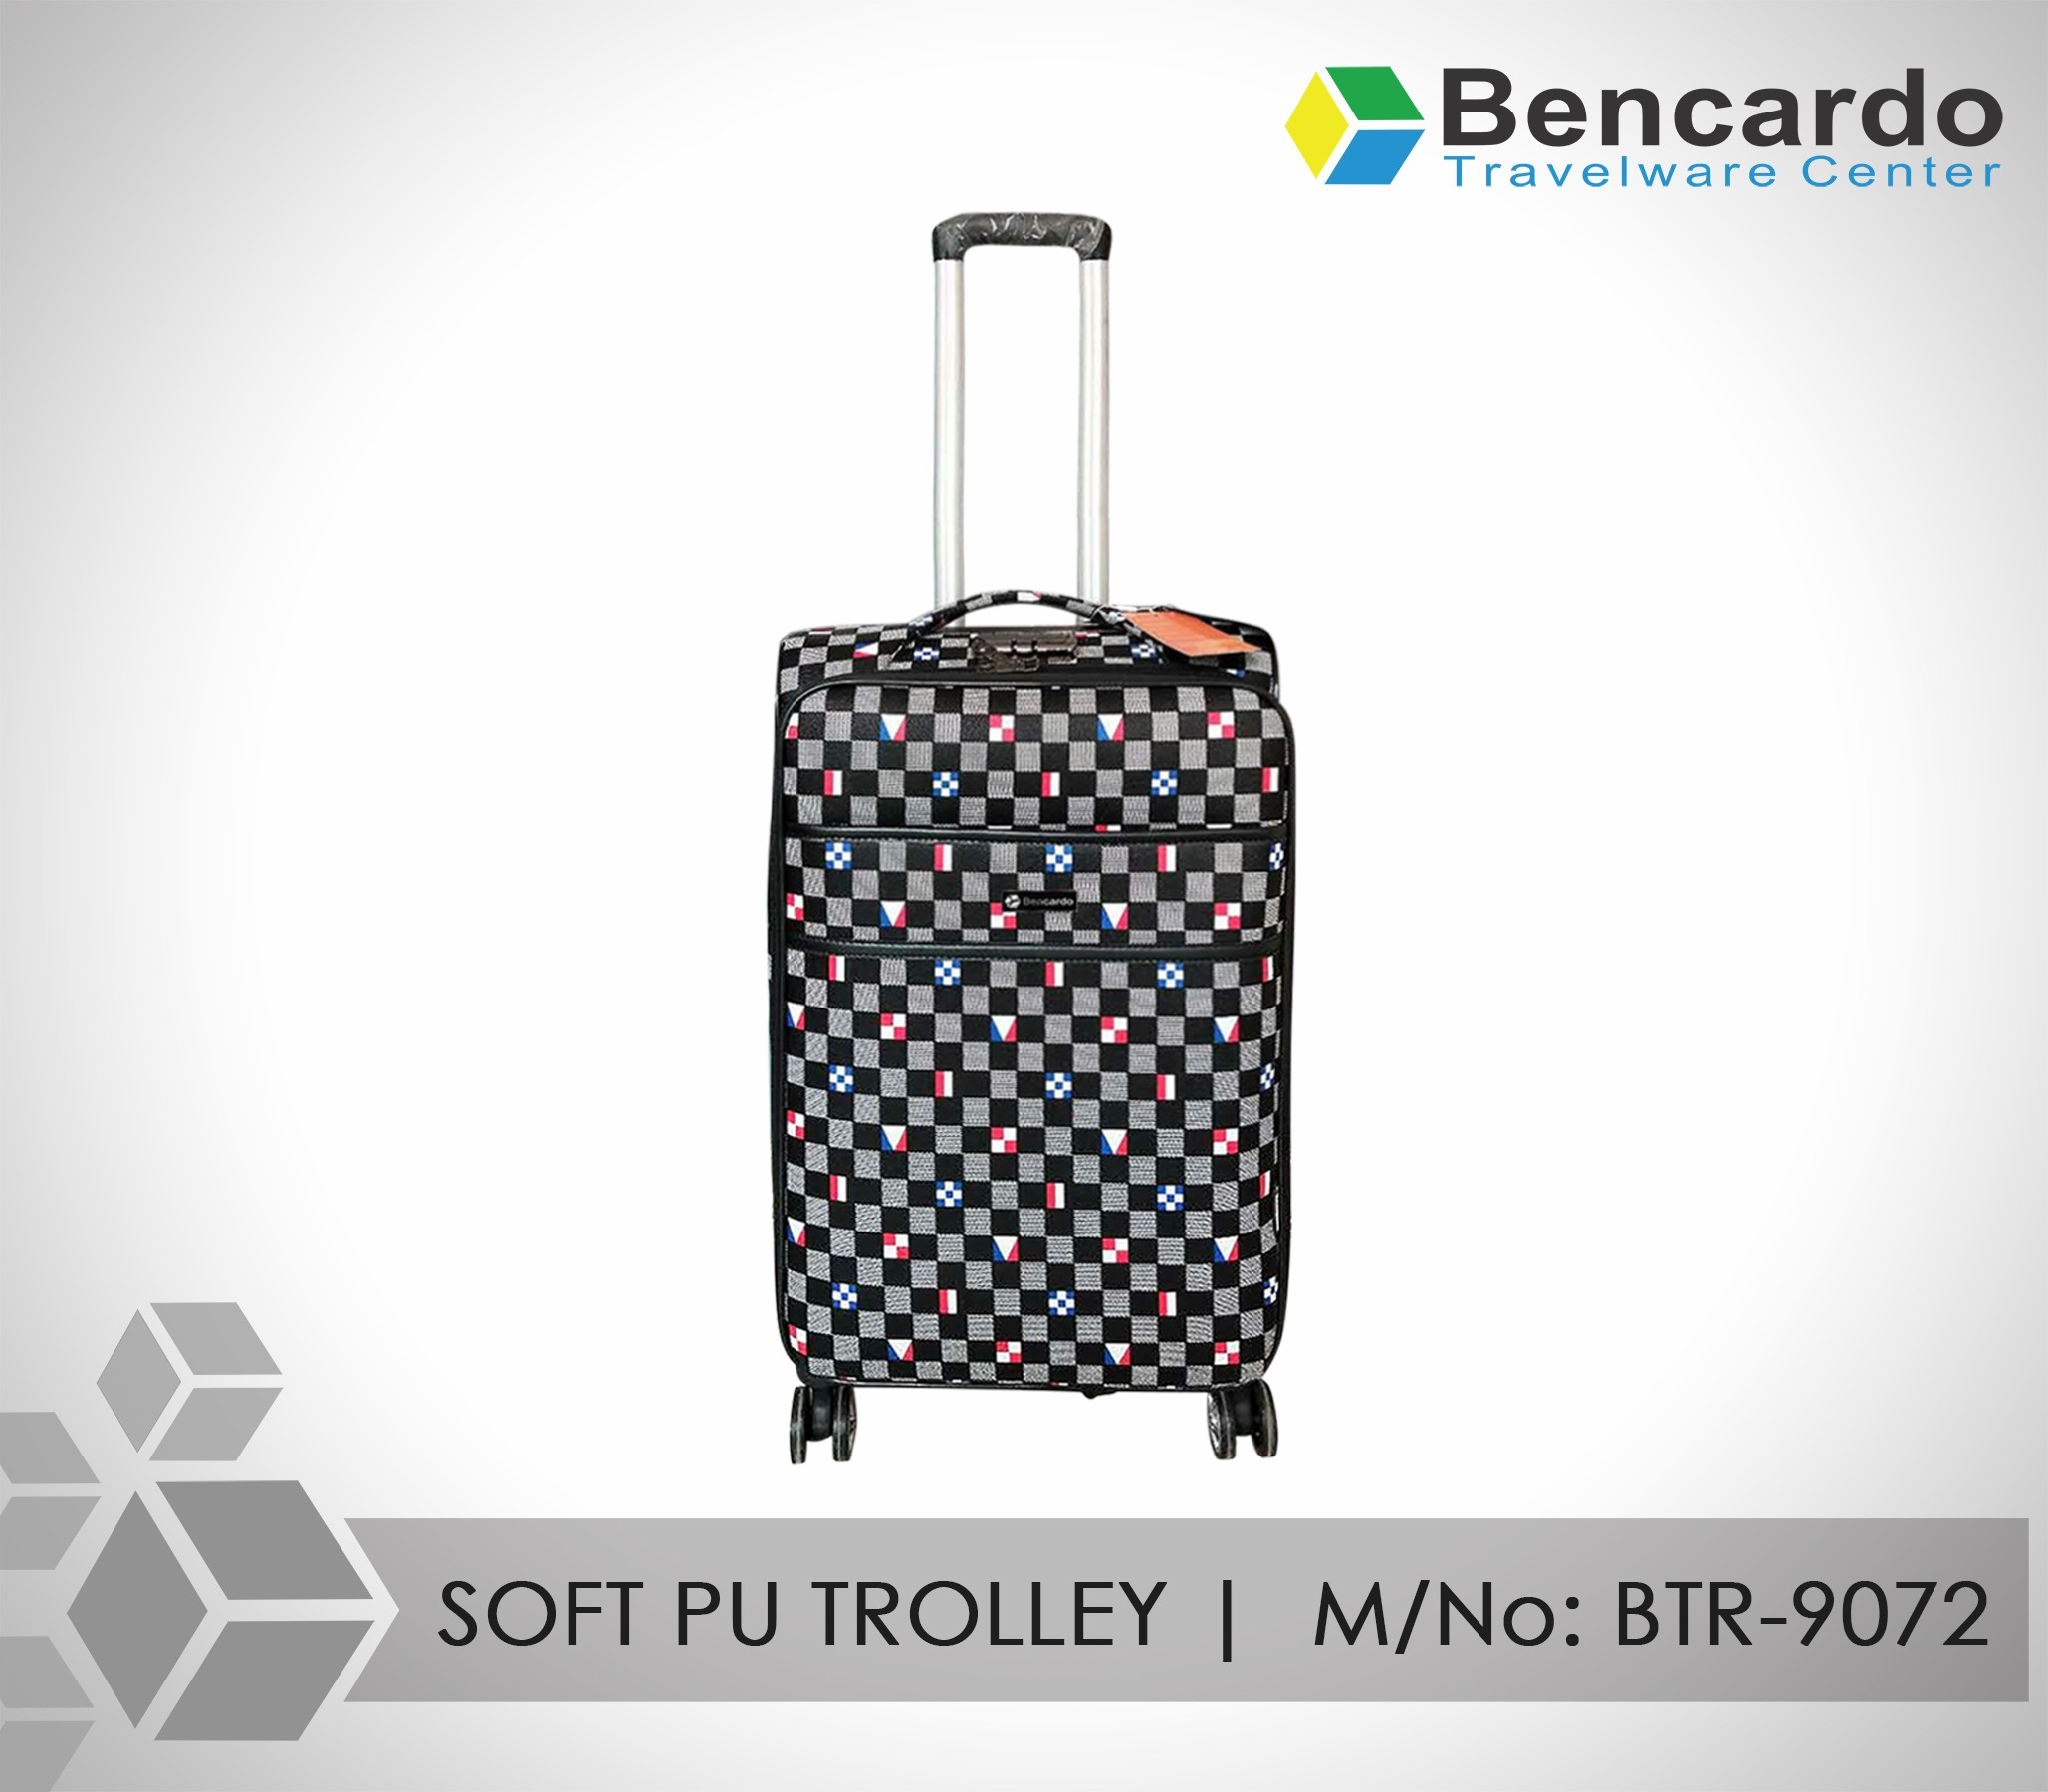 SOFT PU TROLLEY LUGGAGE-4 WHEELS-BTR-9072